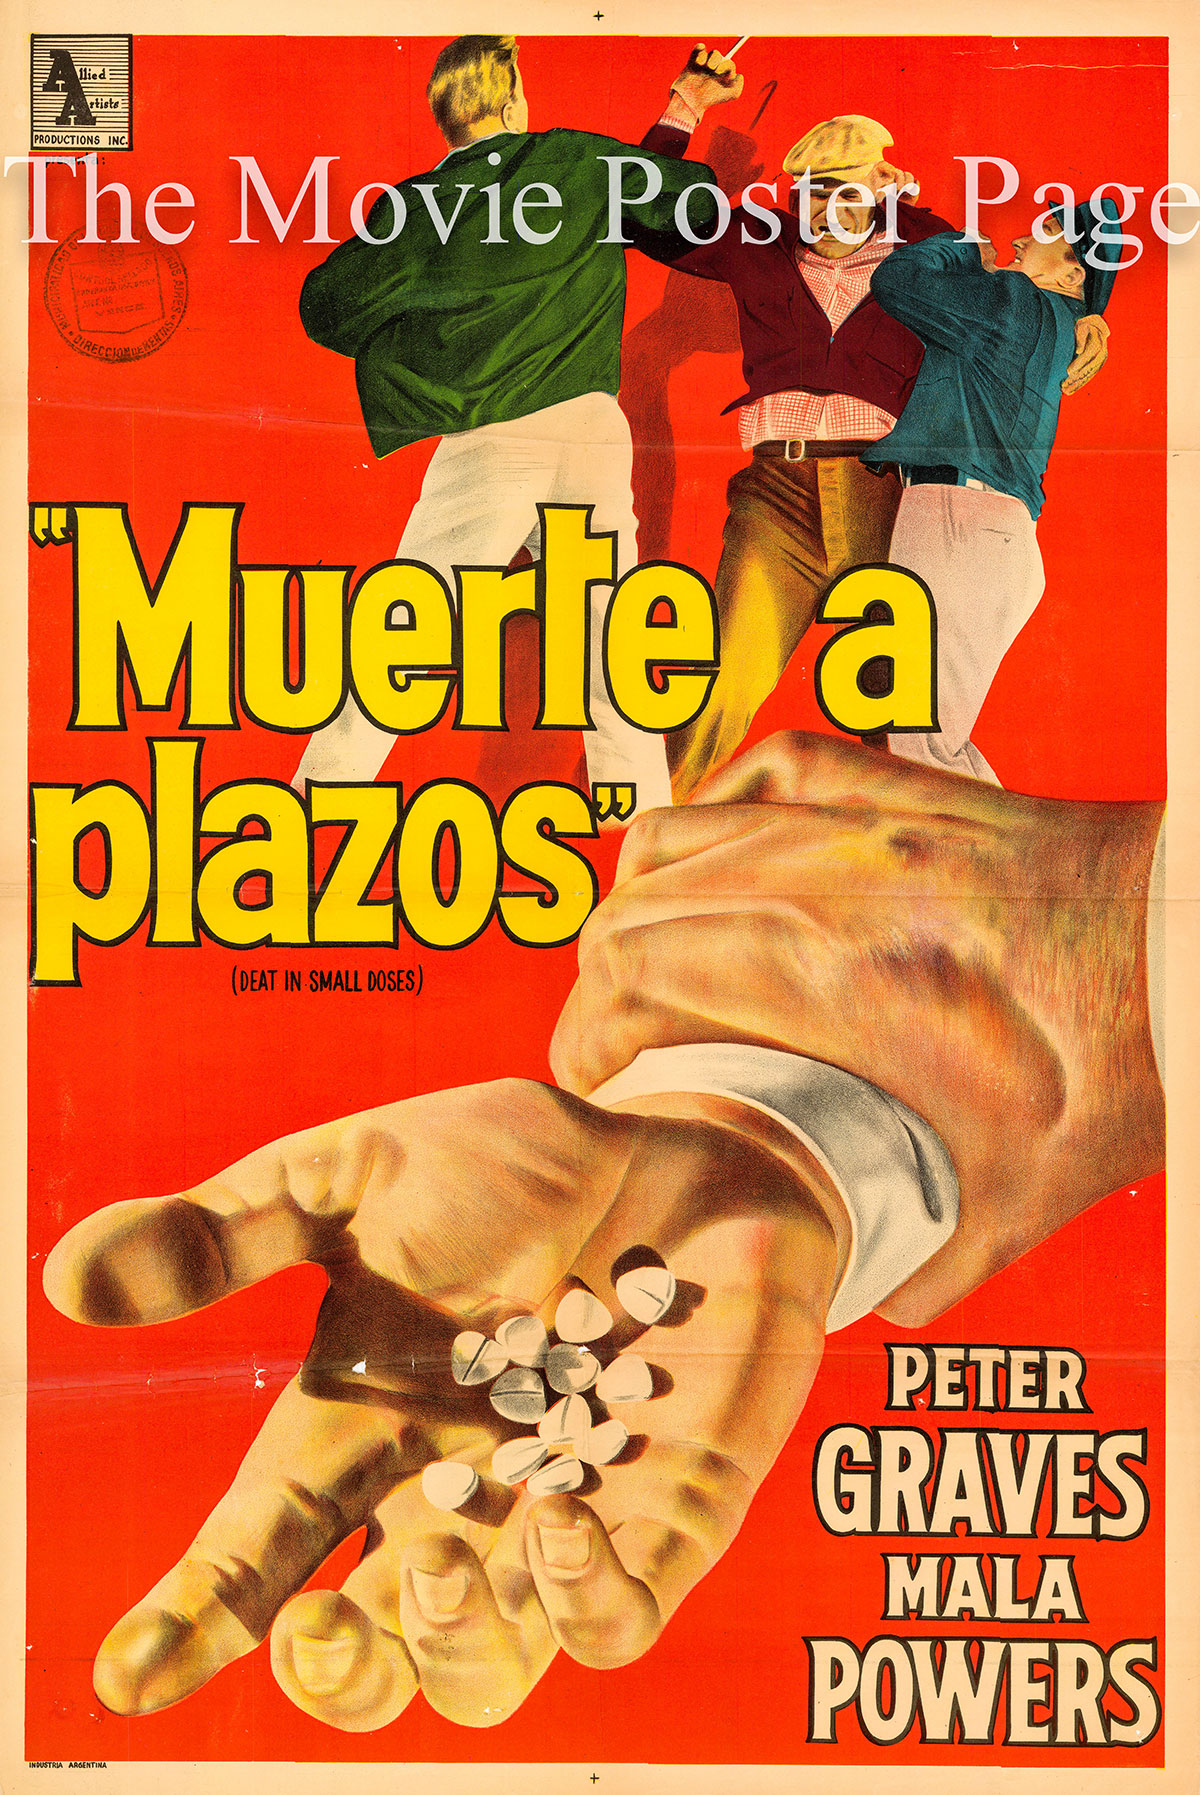 Pictured is an Argentine one-sheet poster for the 1957 Joseph M. Newman film Death in Small Doses starring Peter Graves.